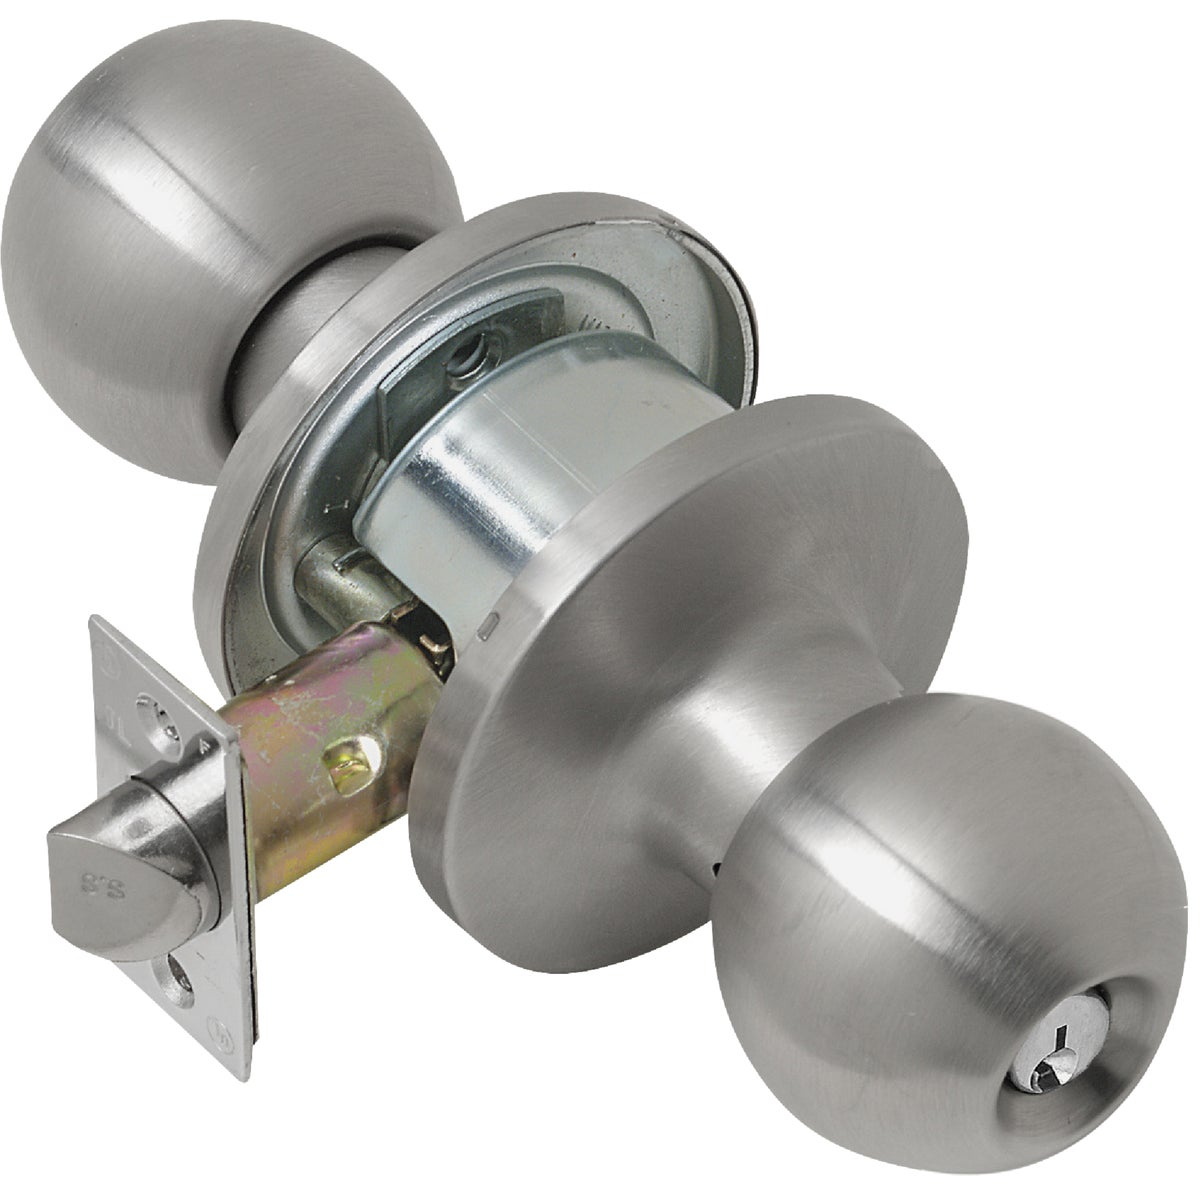 32D LD COMM STRM KNOB - CL101704 by Tell Mfg Inc